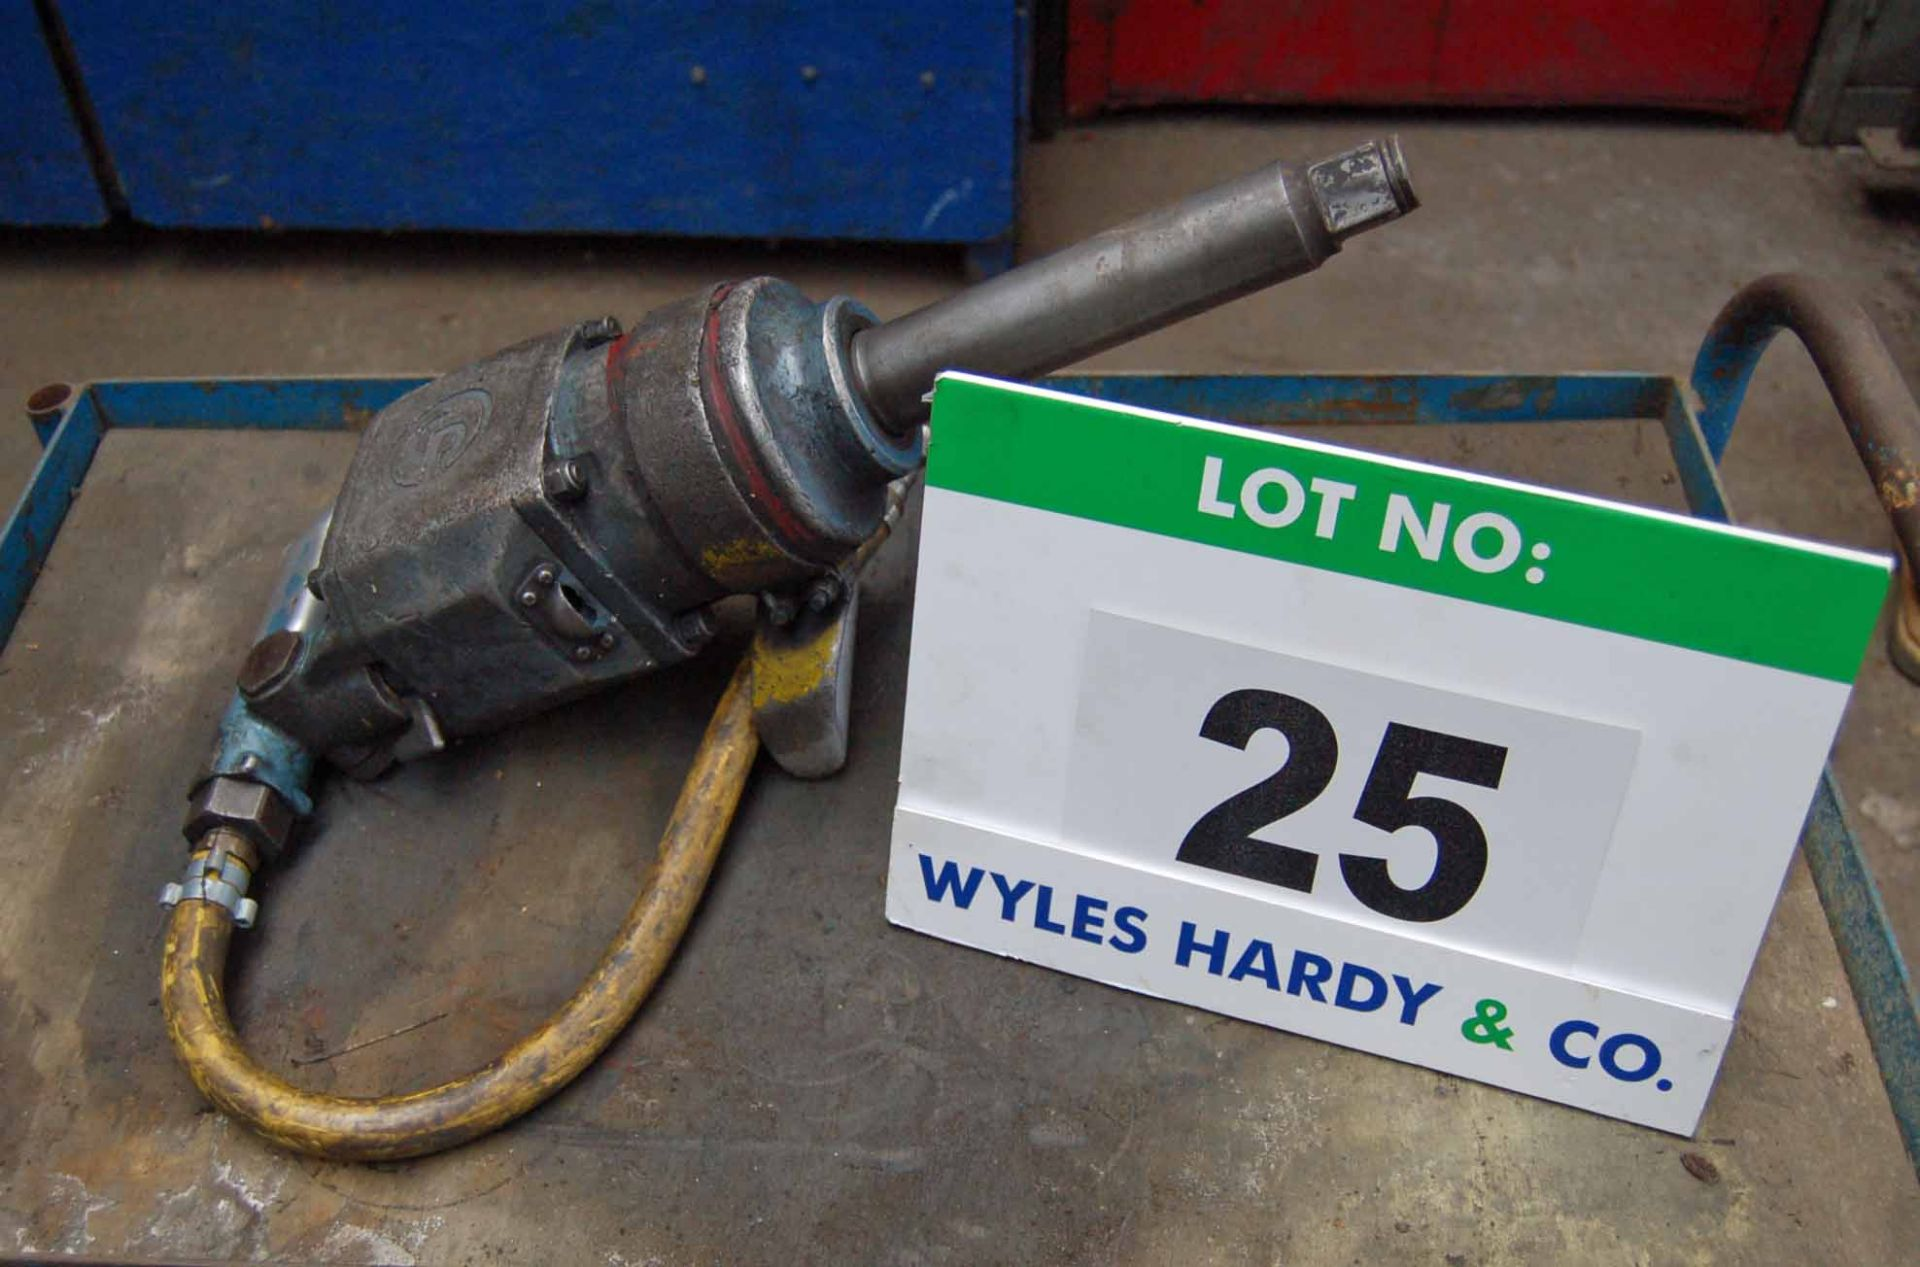 Lot 25 - A CP Heavy Duty Pneumatic Impact Wrench